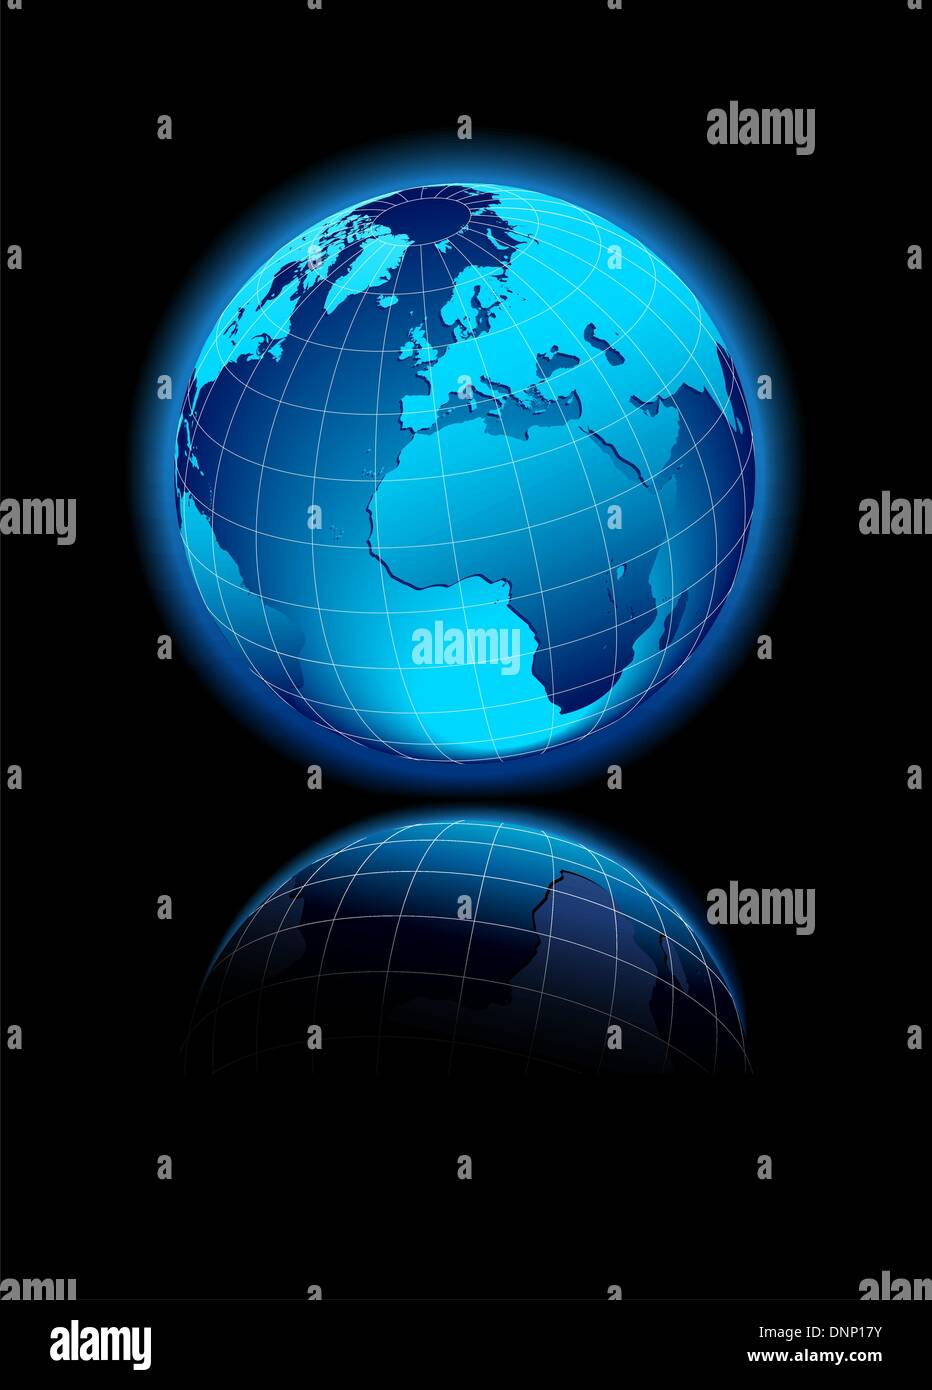 Vector Map Icon of the world in Globe form - Europe, Africa, Middle East Stock Vector